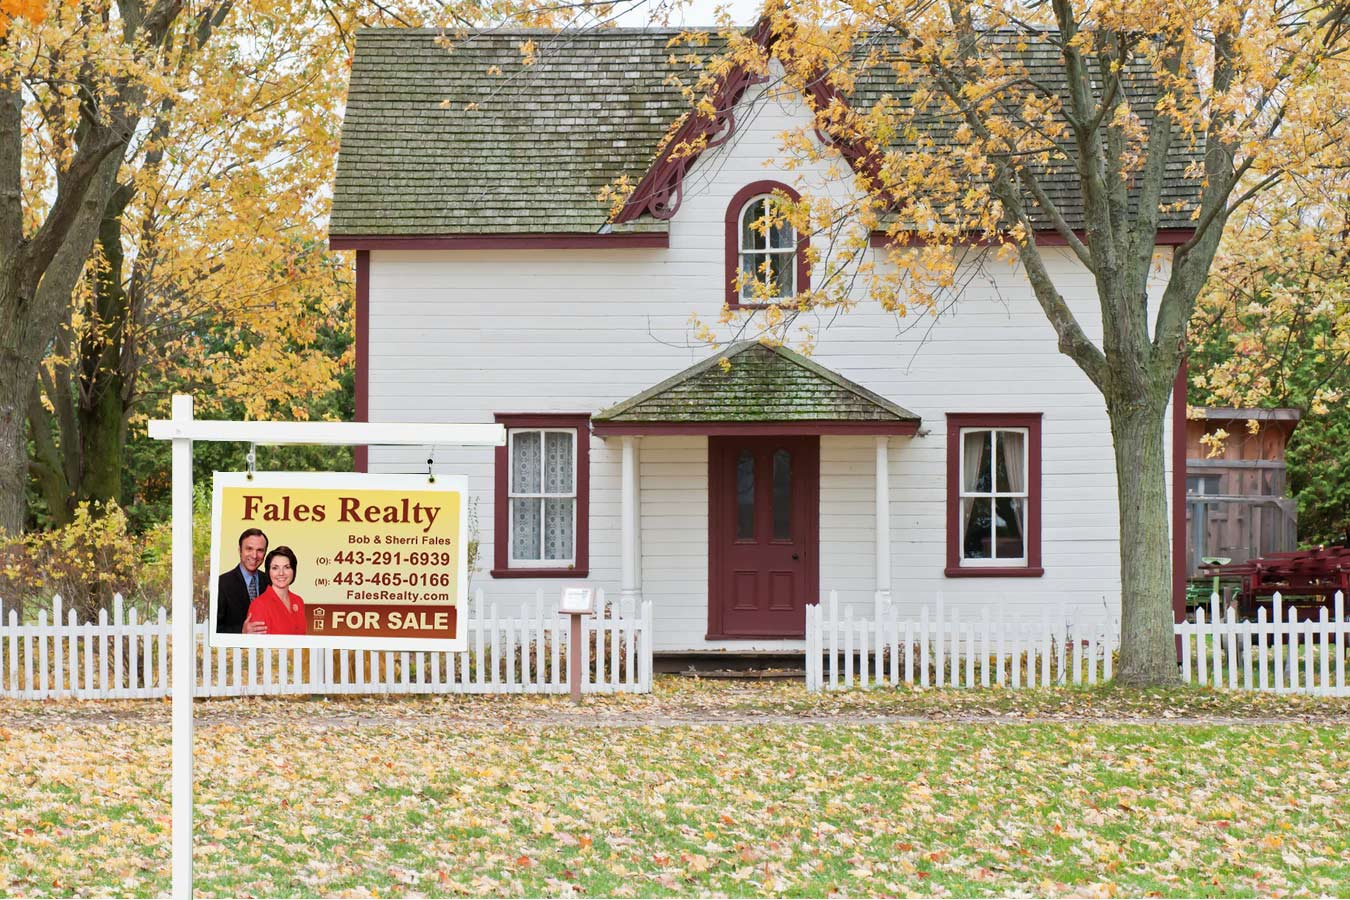 Home Seller's Guide: Top Do's and Don'ts for a Quick Sale